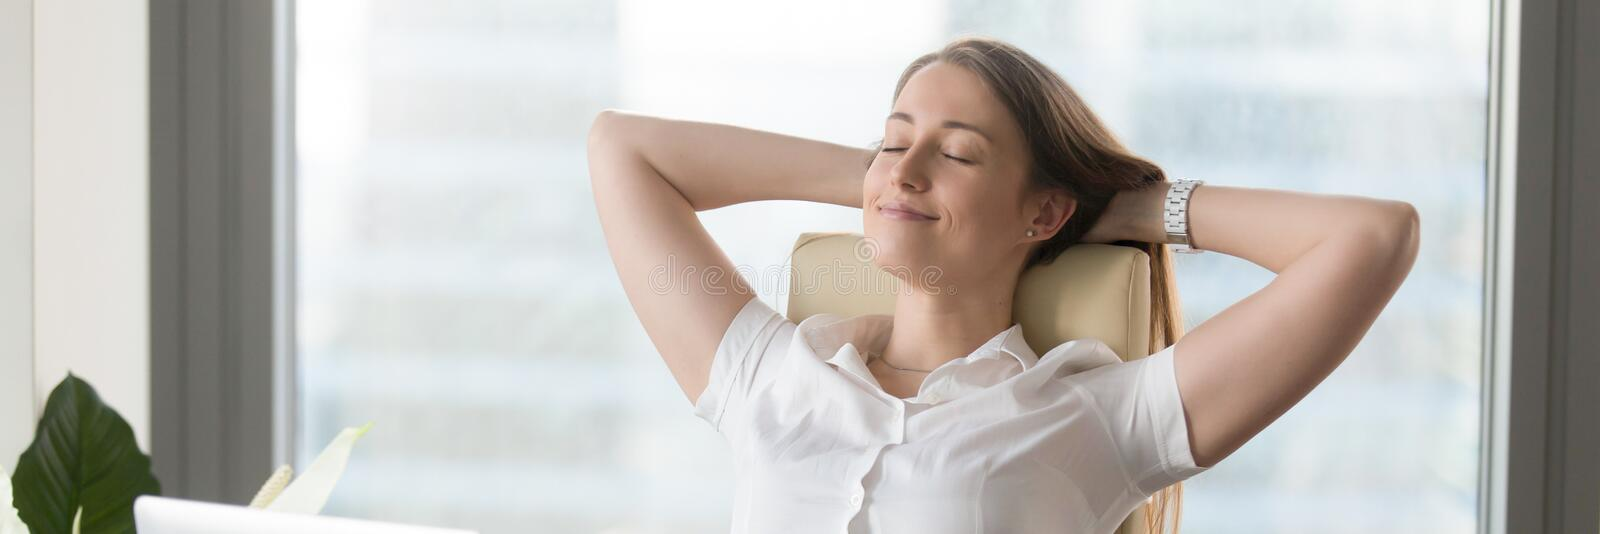 Horizontal image businesswoman sitting on chair resting put hands behind head. Horizontal photo businesswoman sitting on chair put hands behind head feels good stock photography